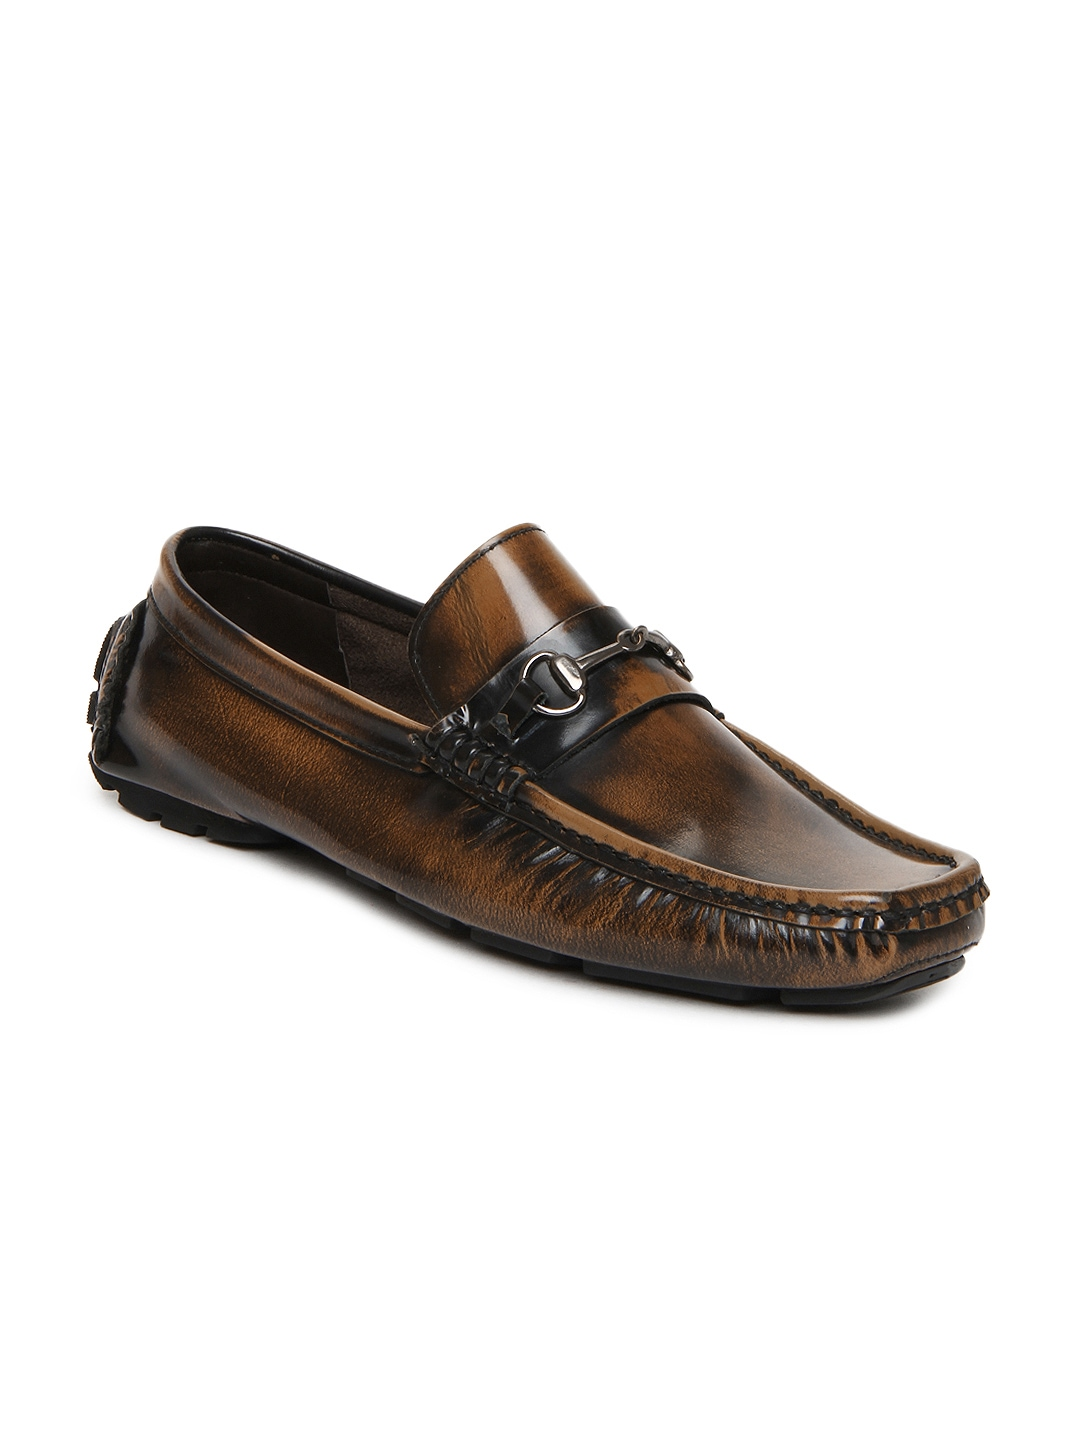 ucb loafer shoes 28 images shopping at myntra india s